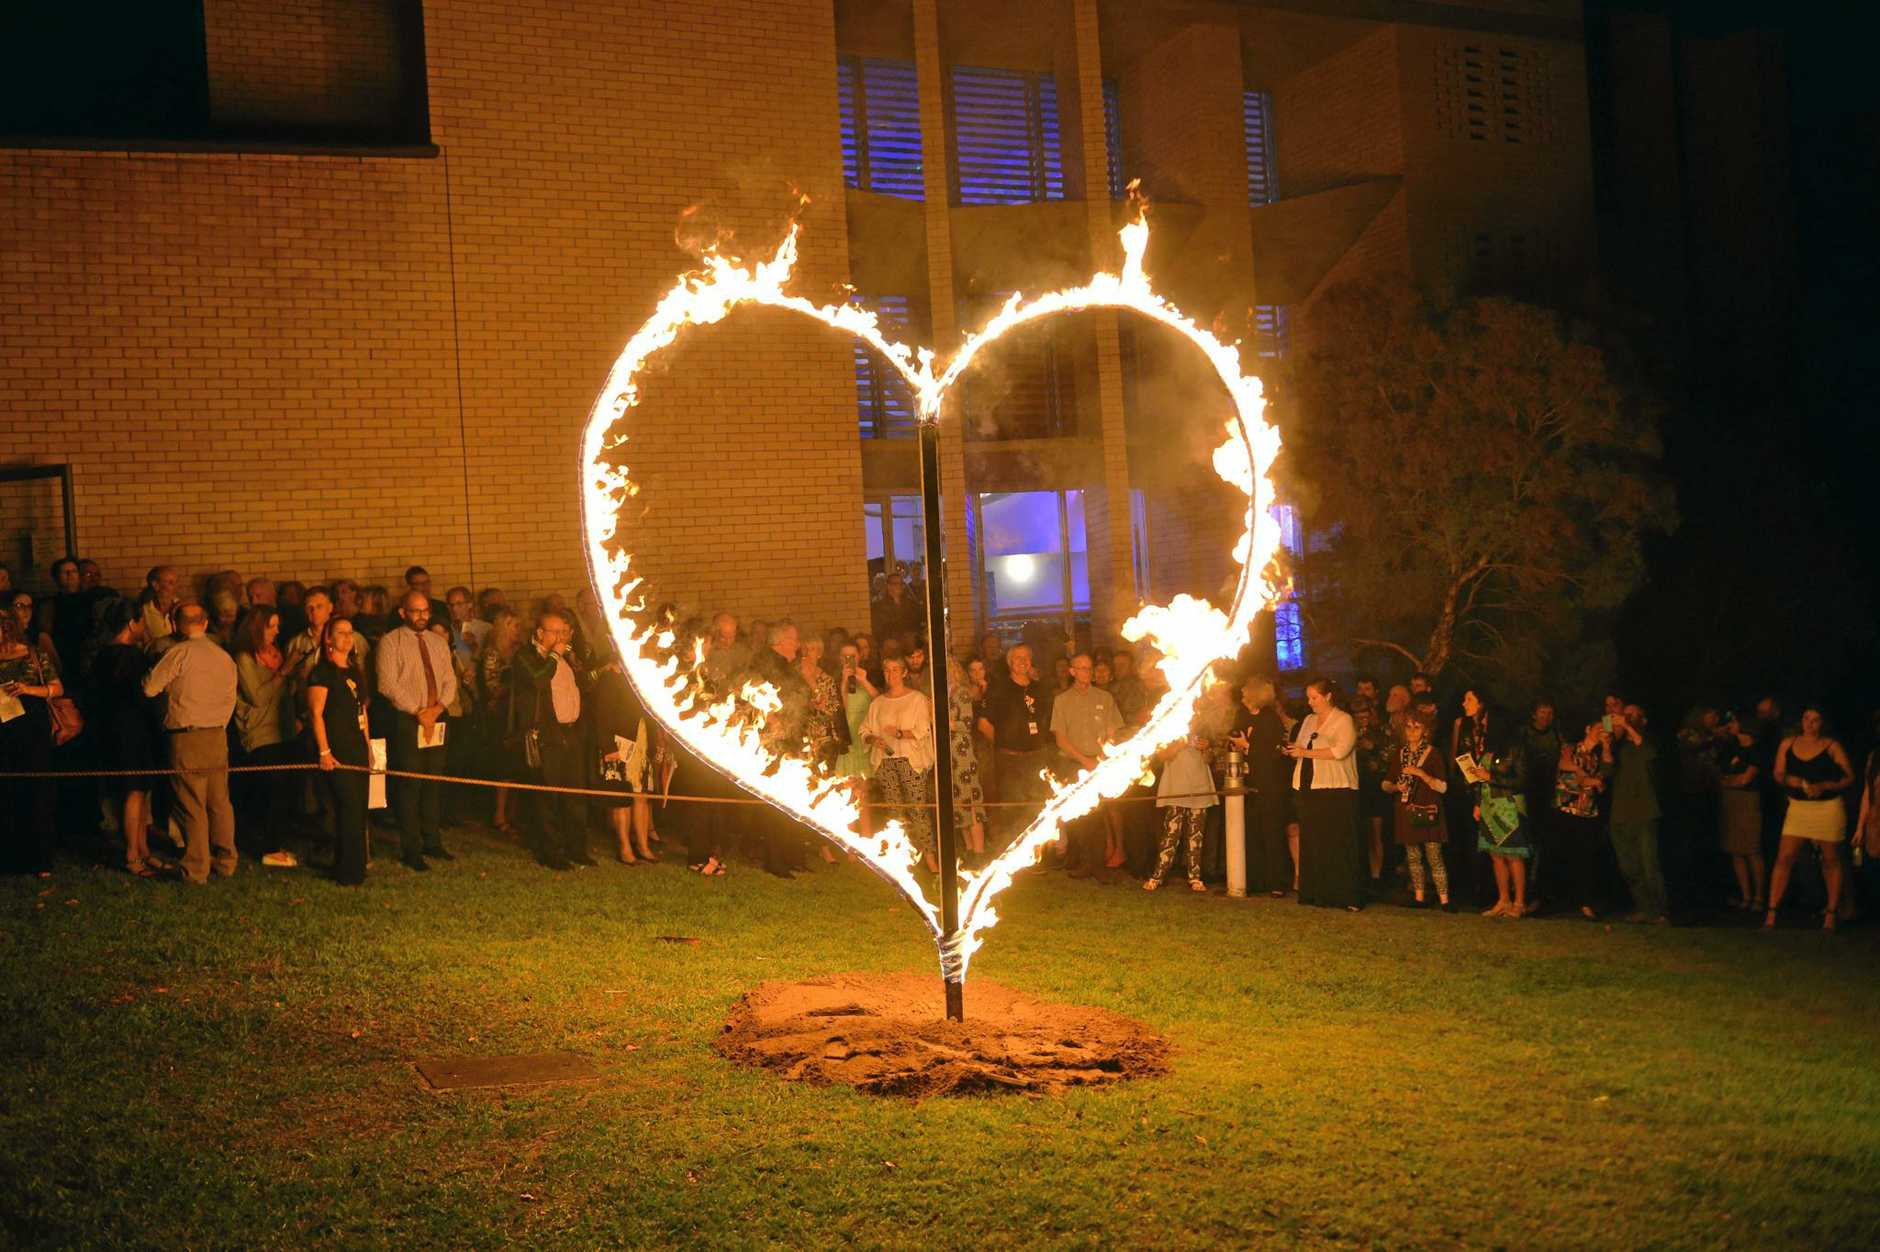 The Heart of Gold International Film Festival goes from October 6-9. Opening night is next Thursday.